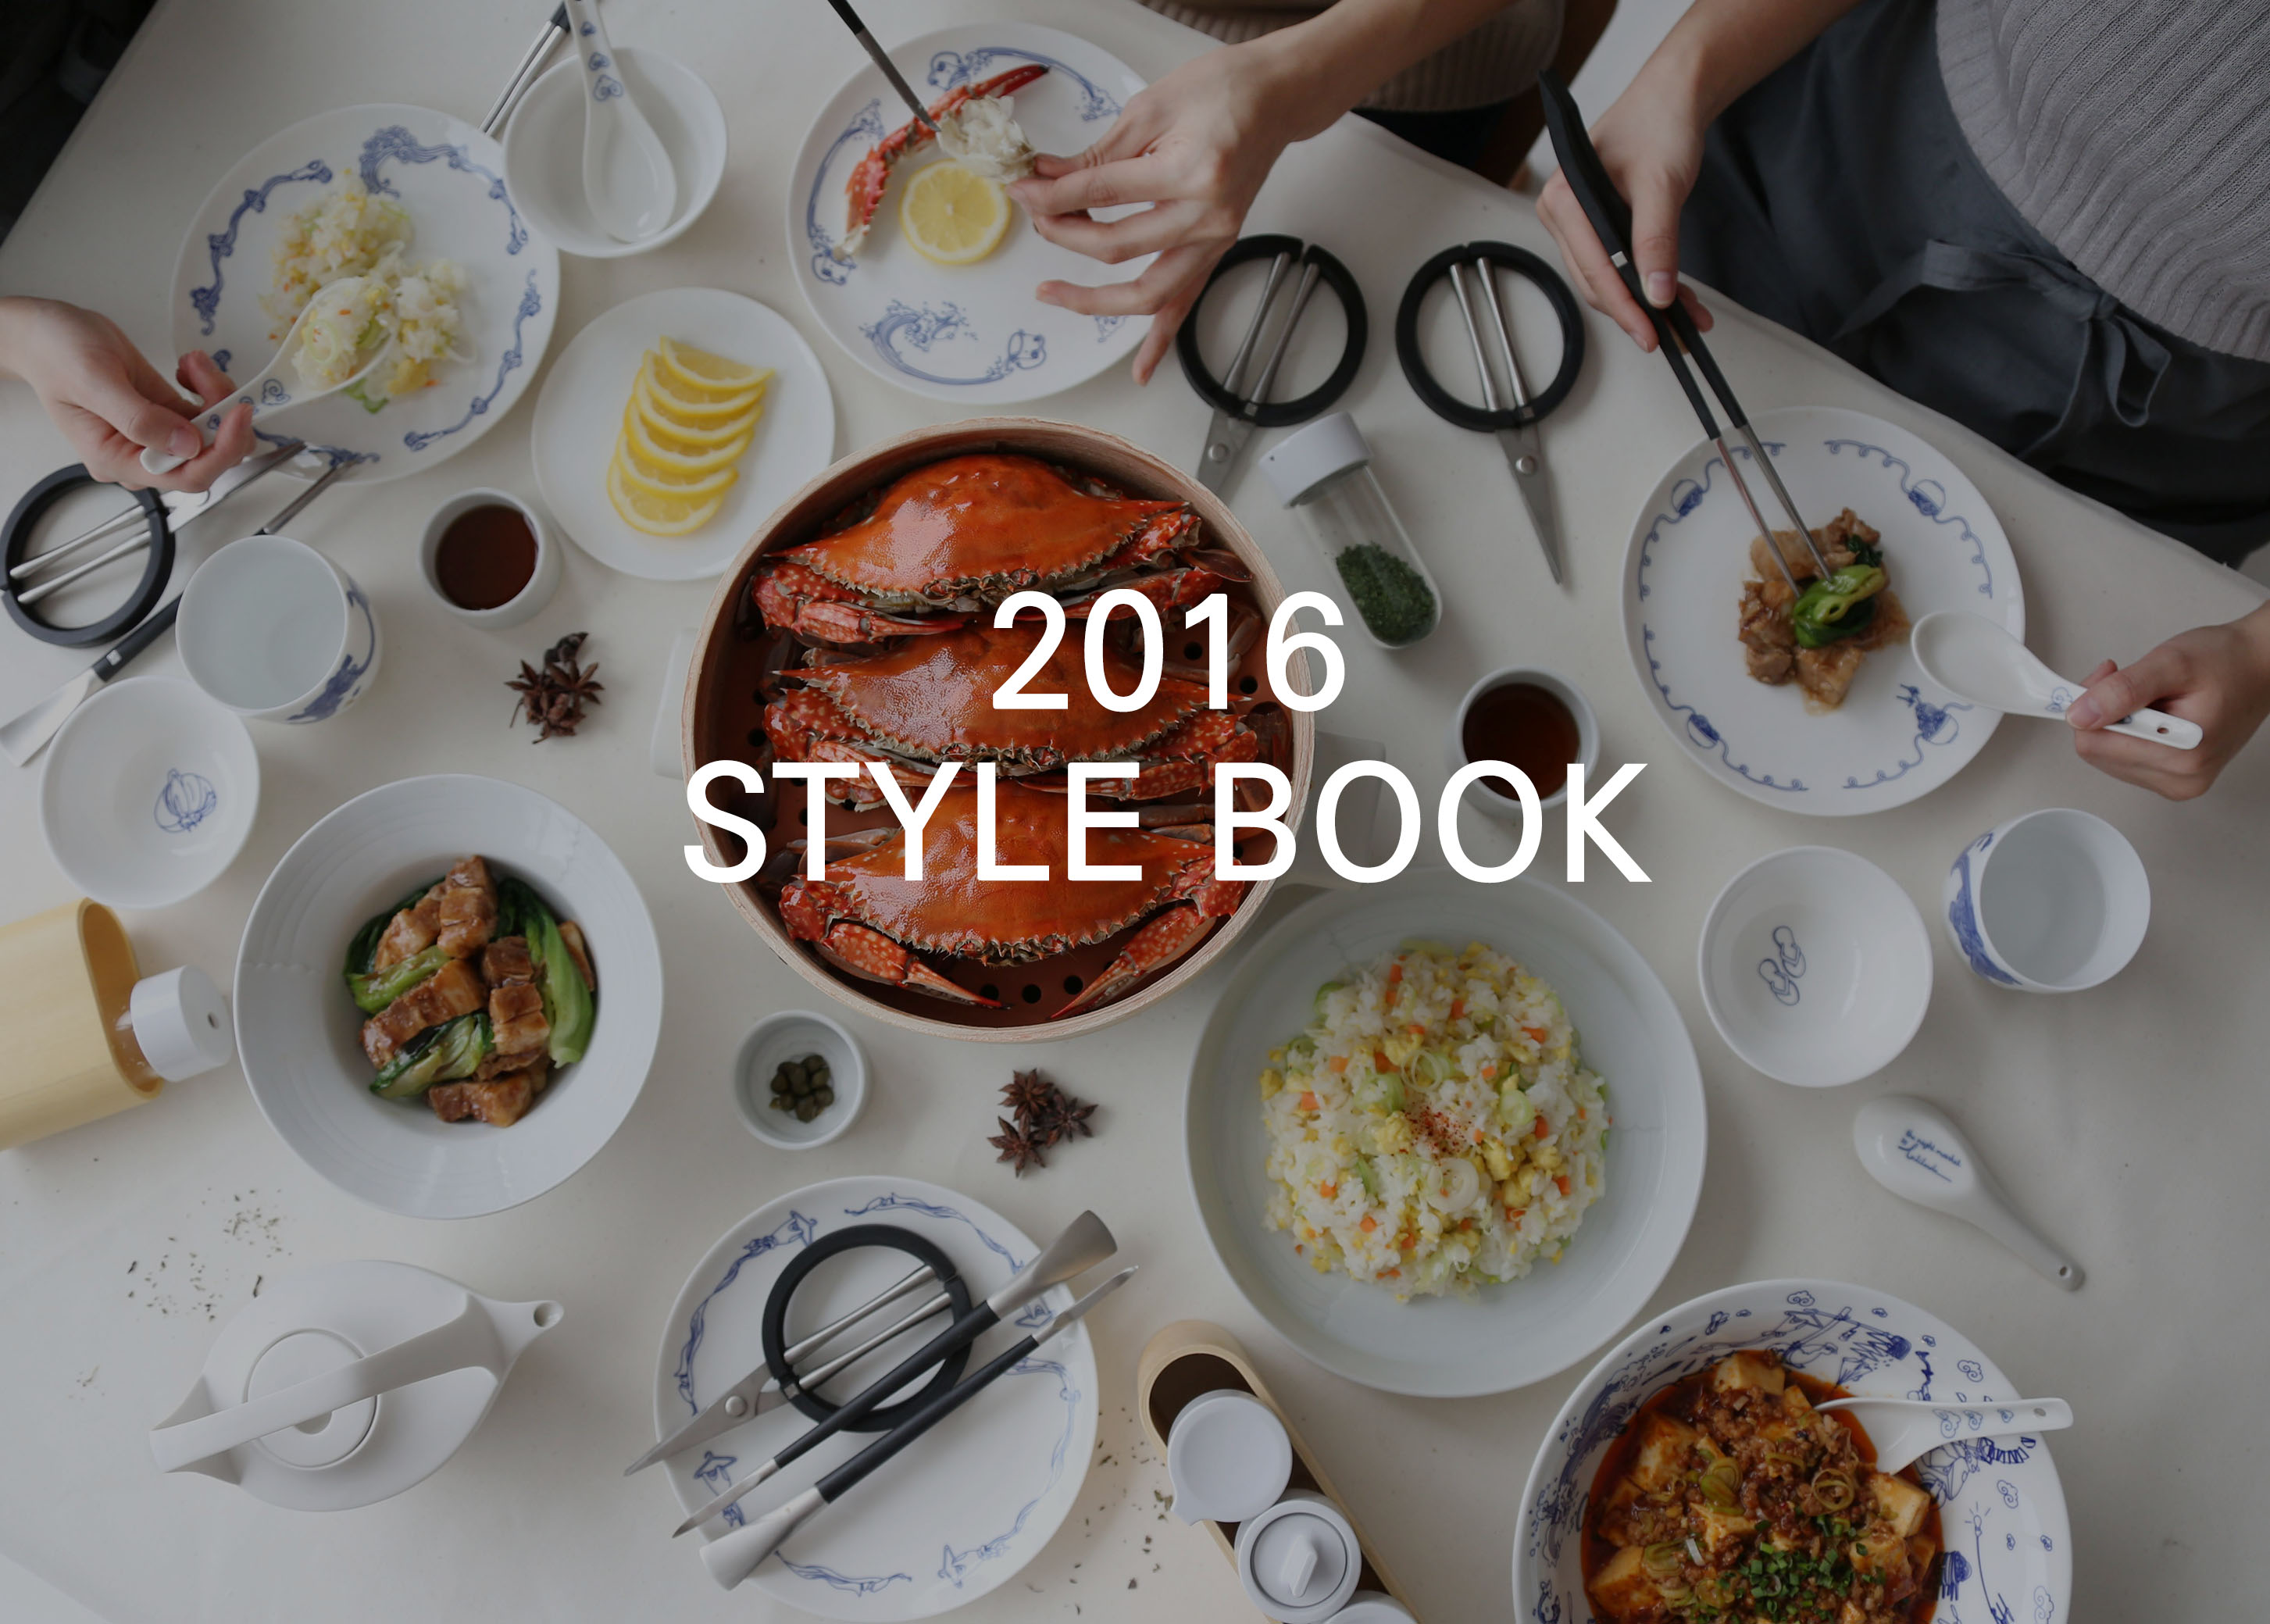 2016 Style book